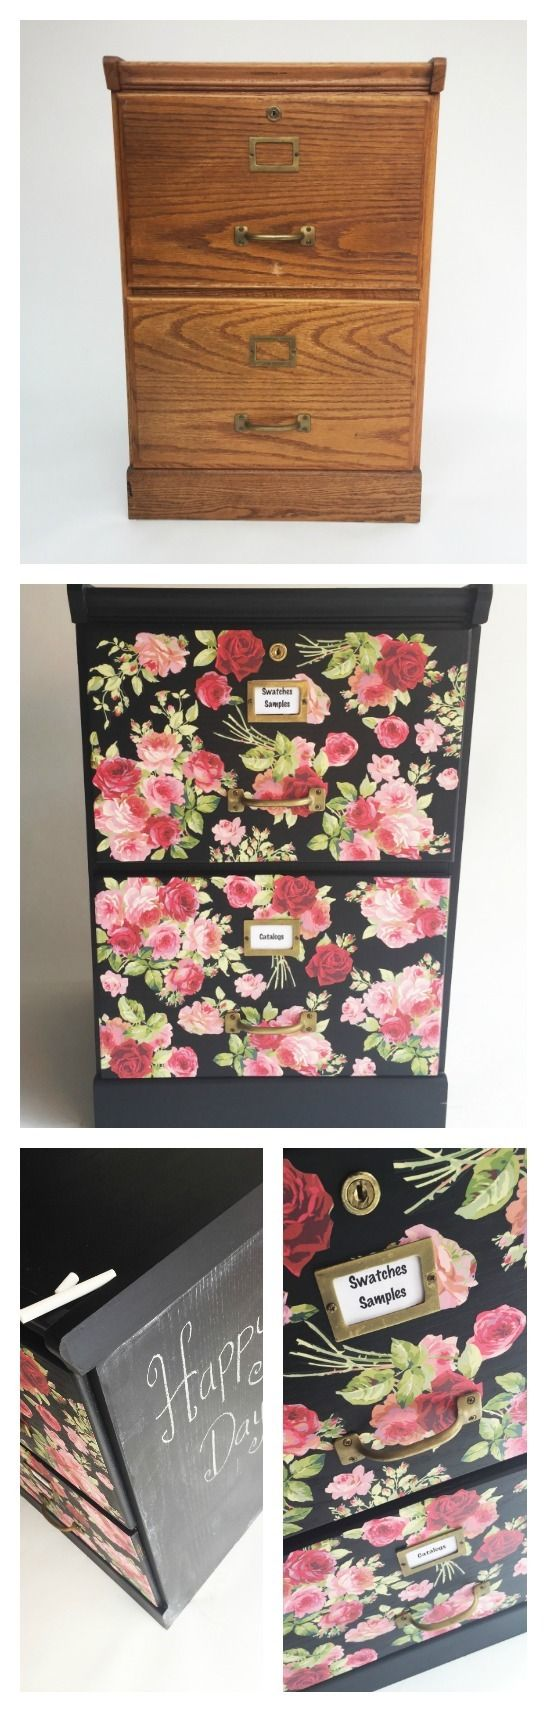 Makeover Furniture On A Budget Using Decoupage And Chalk Paint! Cathie U0026  Steve Rehab A